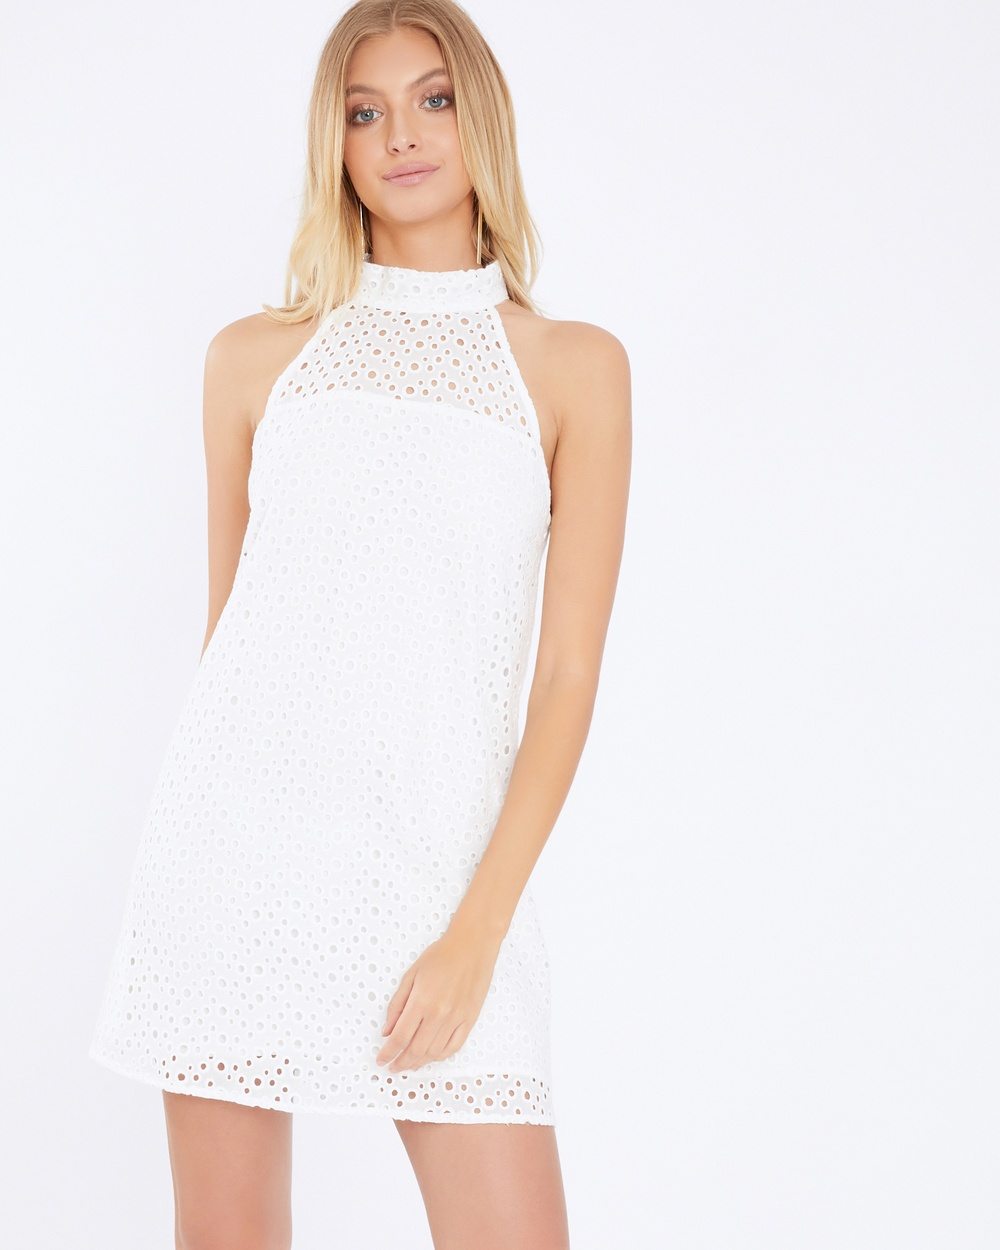 Calli Ava Halter Mini Dress Dresses White Ava Halter Mini Dress